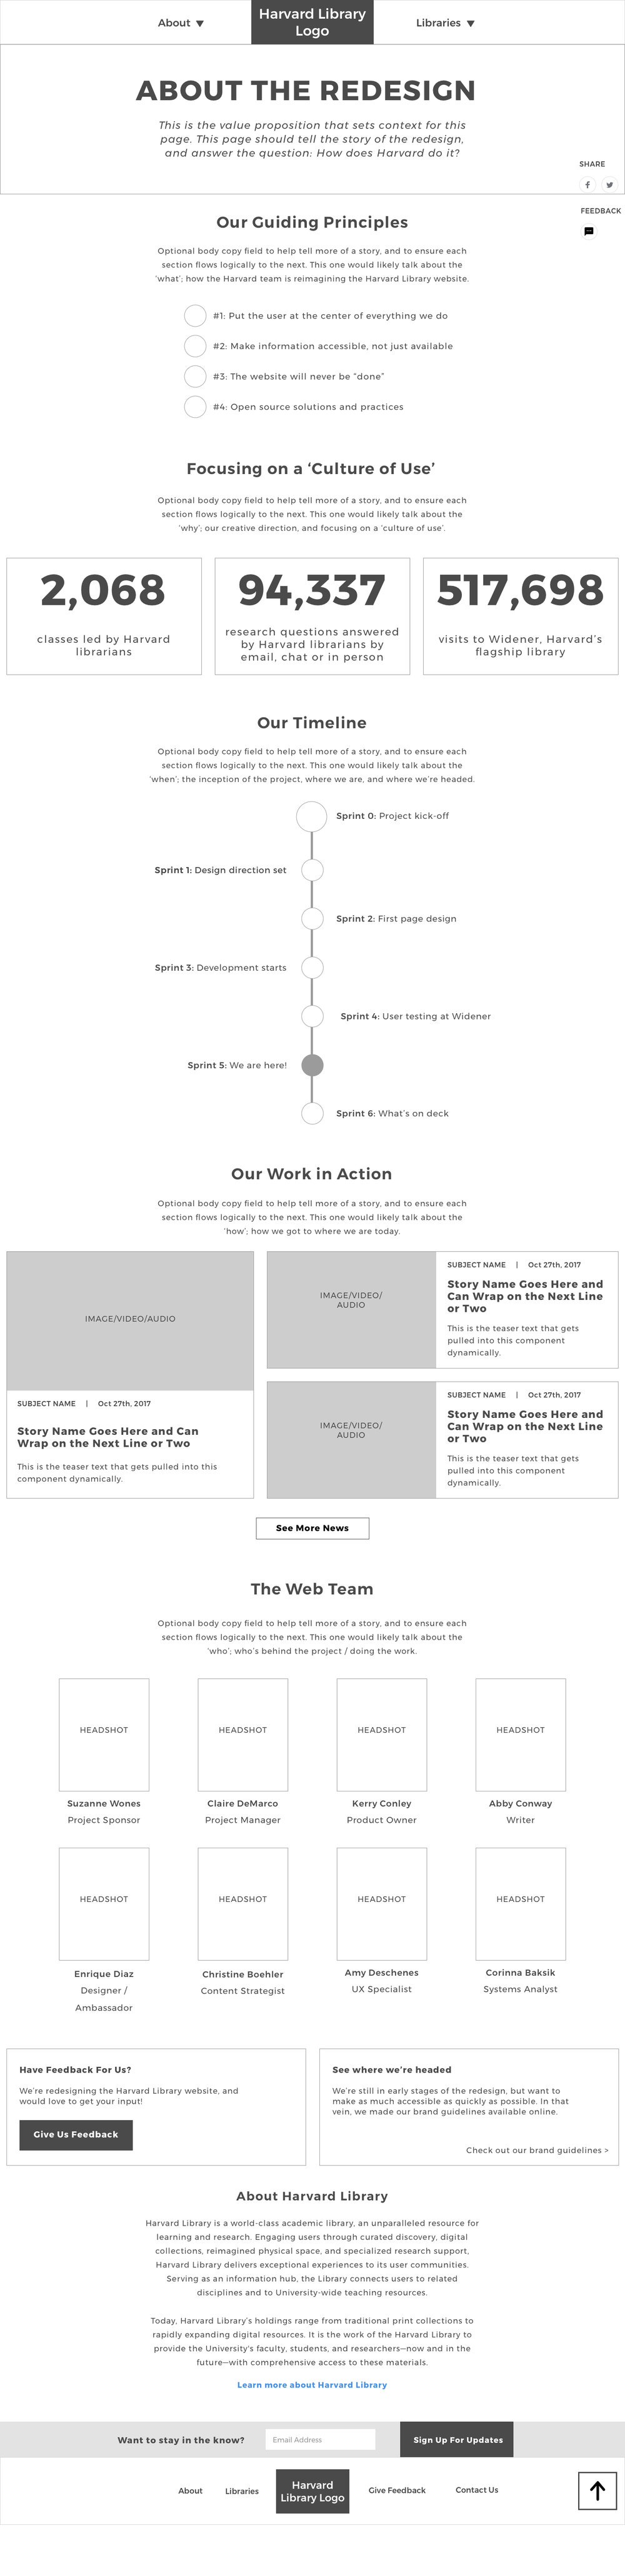 About Landing Page v3.jpg